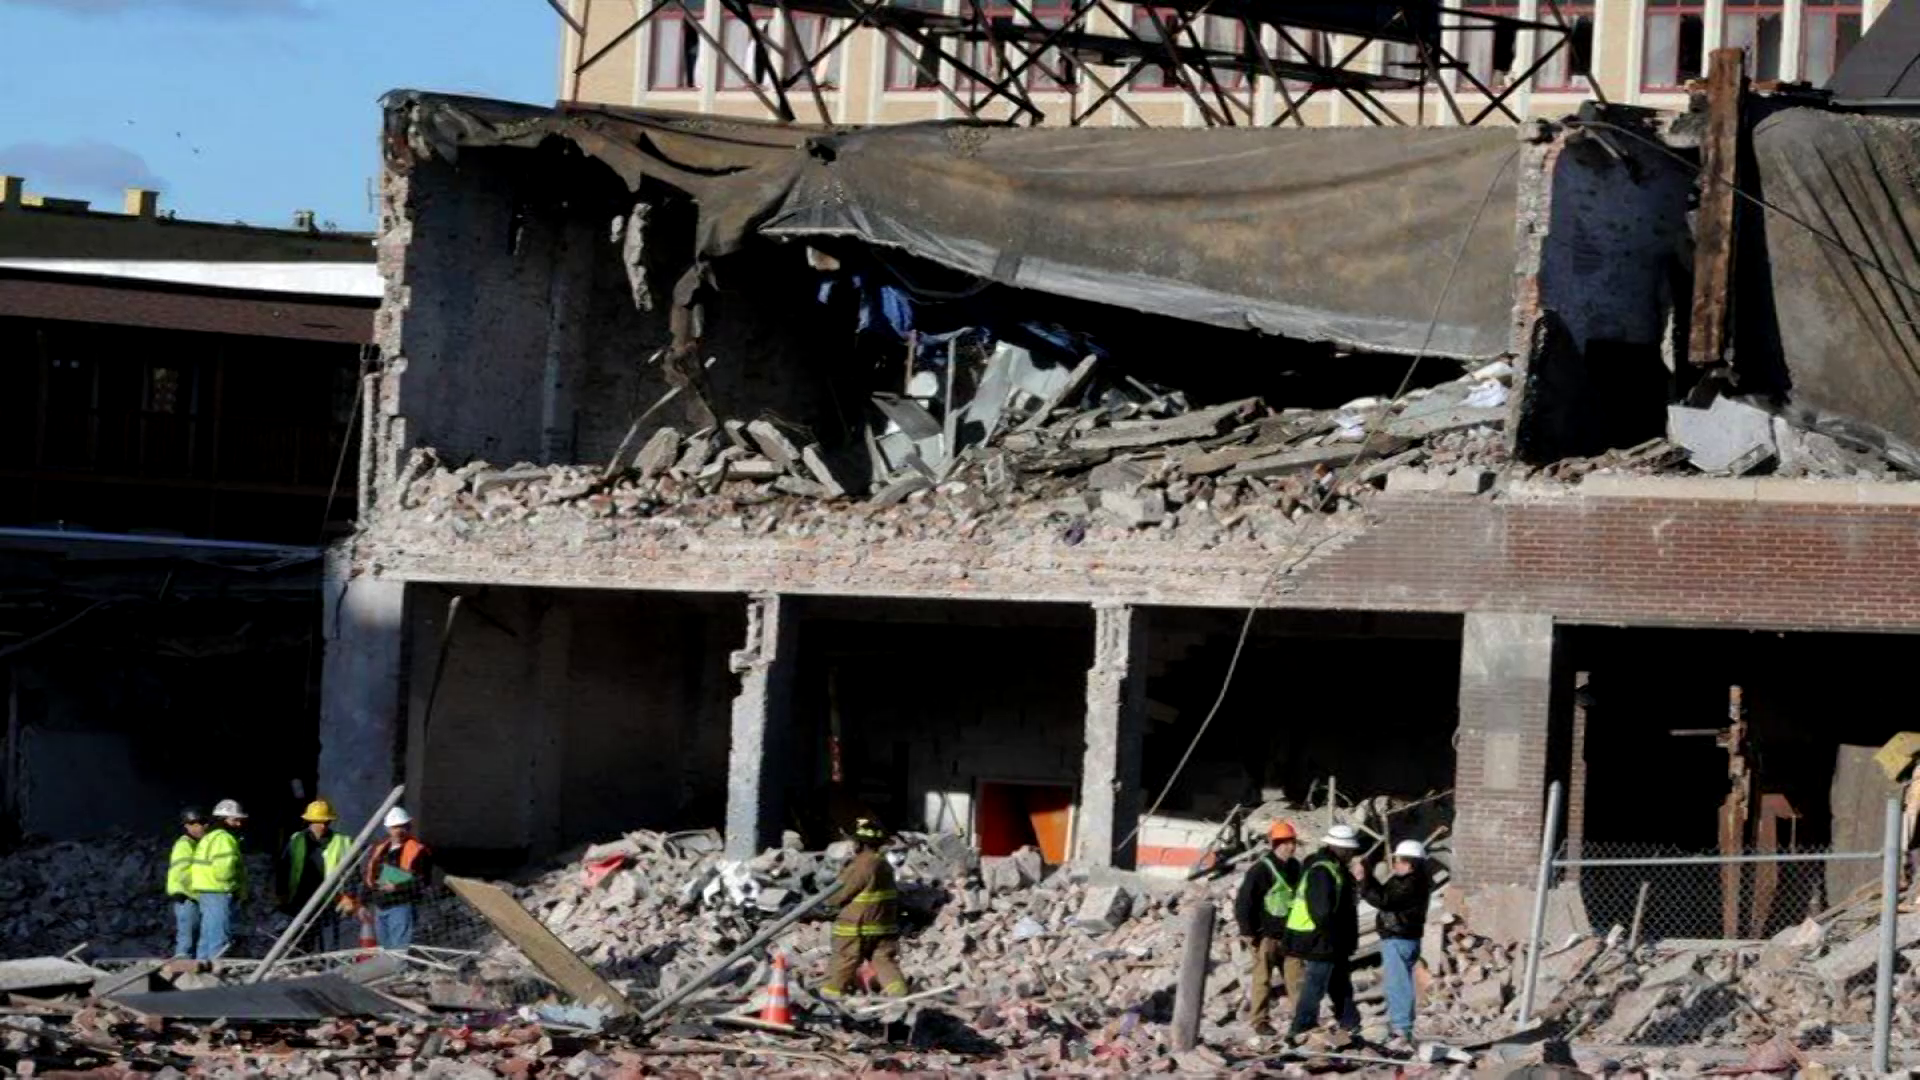 The gas explosion that rocked eastern Massachusetts last week reminded man western Mass residents of the 2012 Springfield gas explosion.